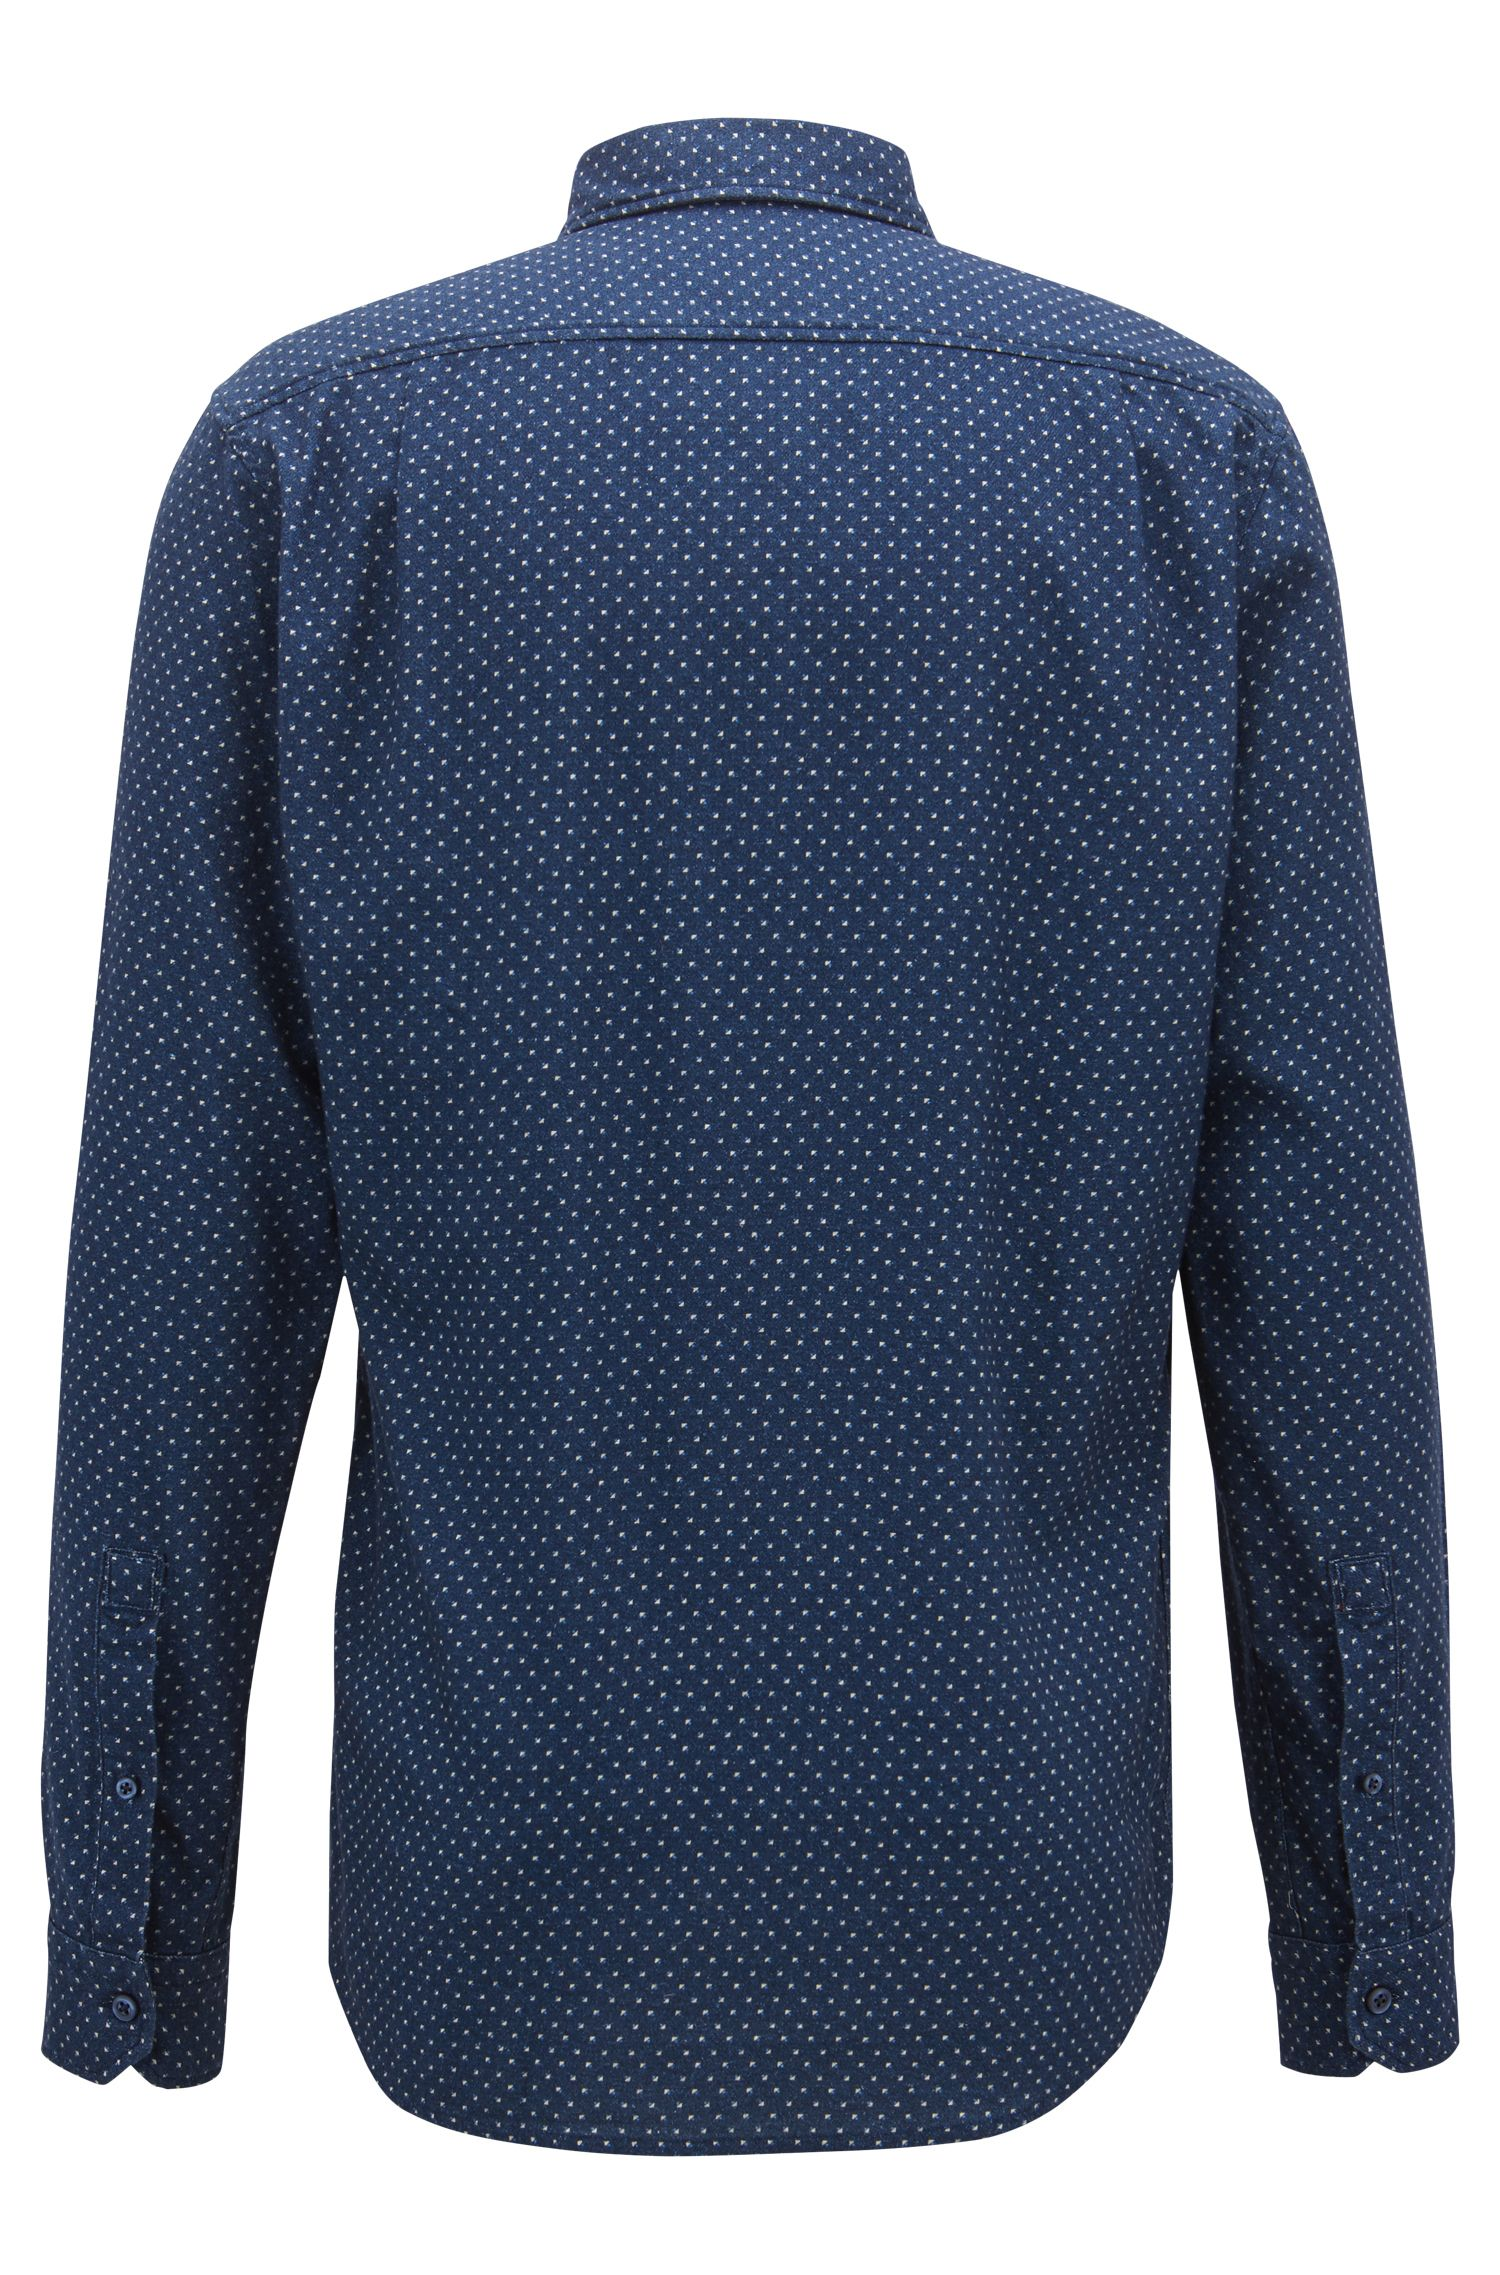 Camicia regular fit in twill di cotone con motivo geometrico